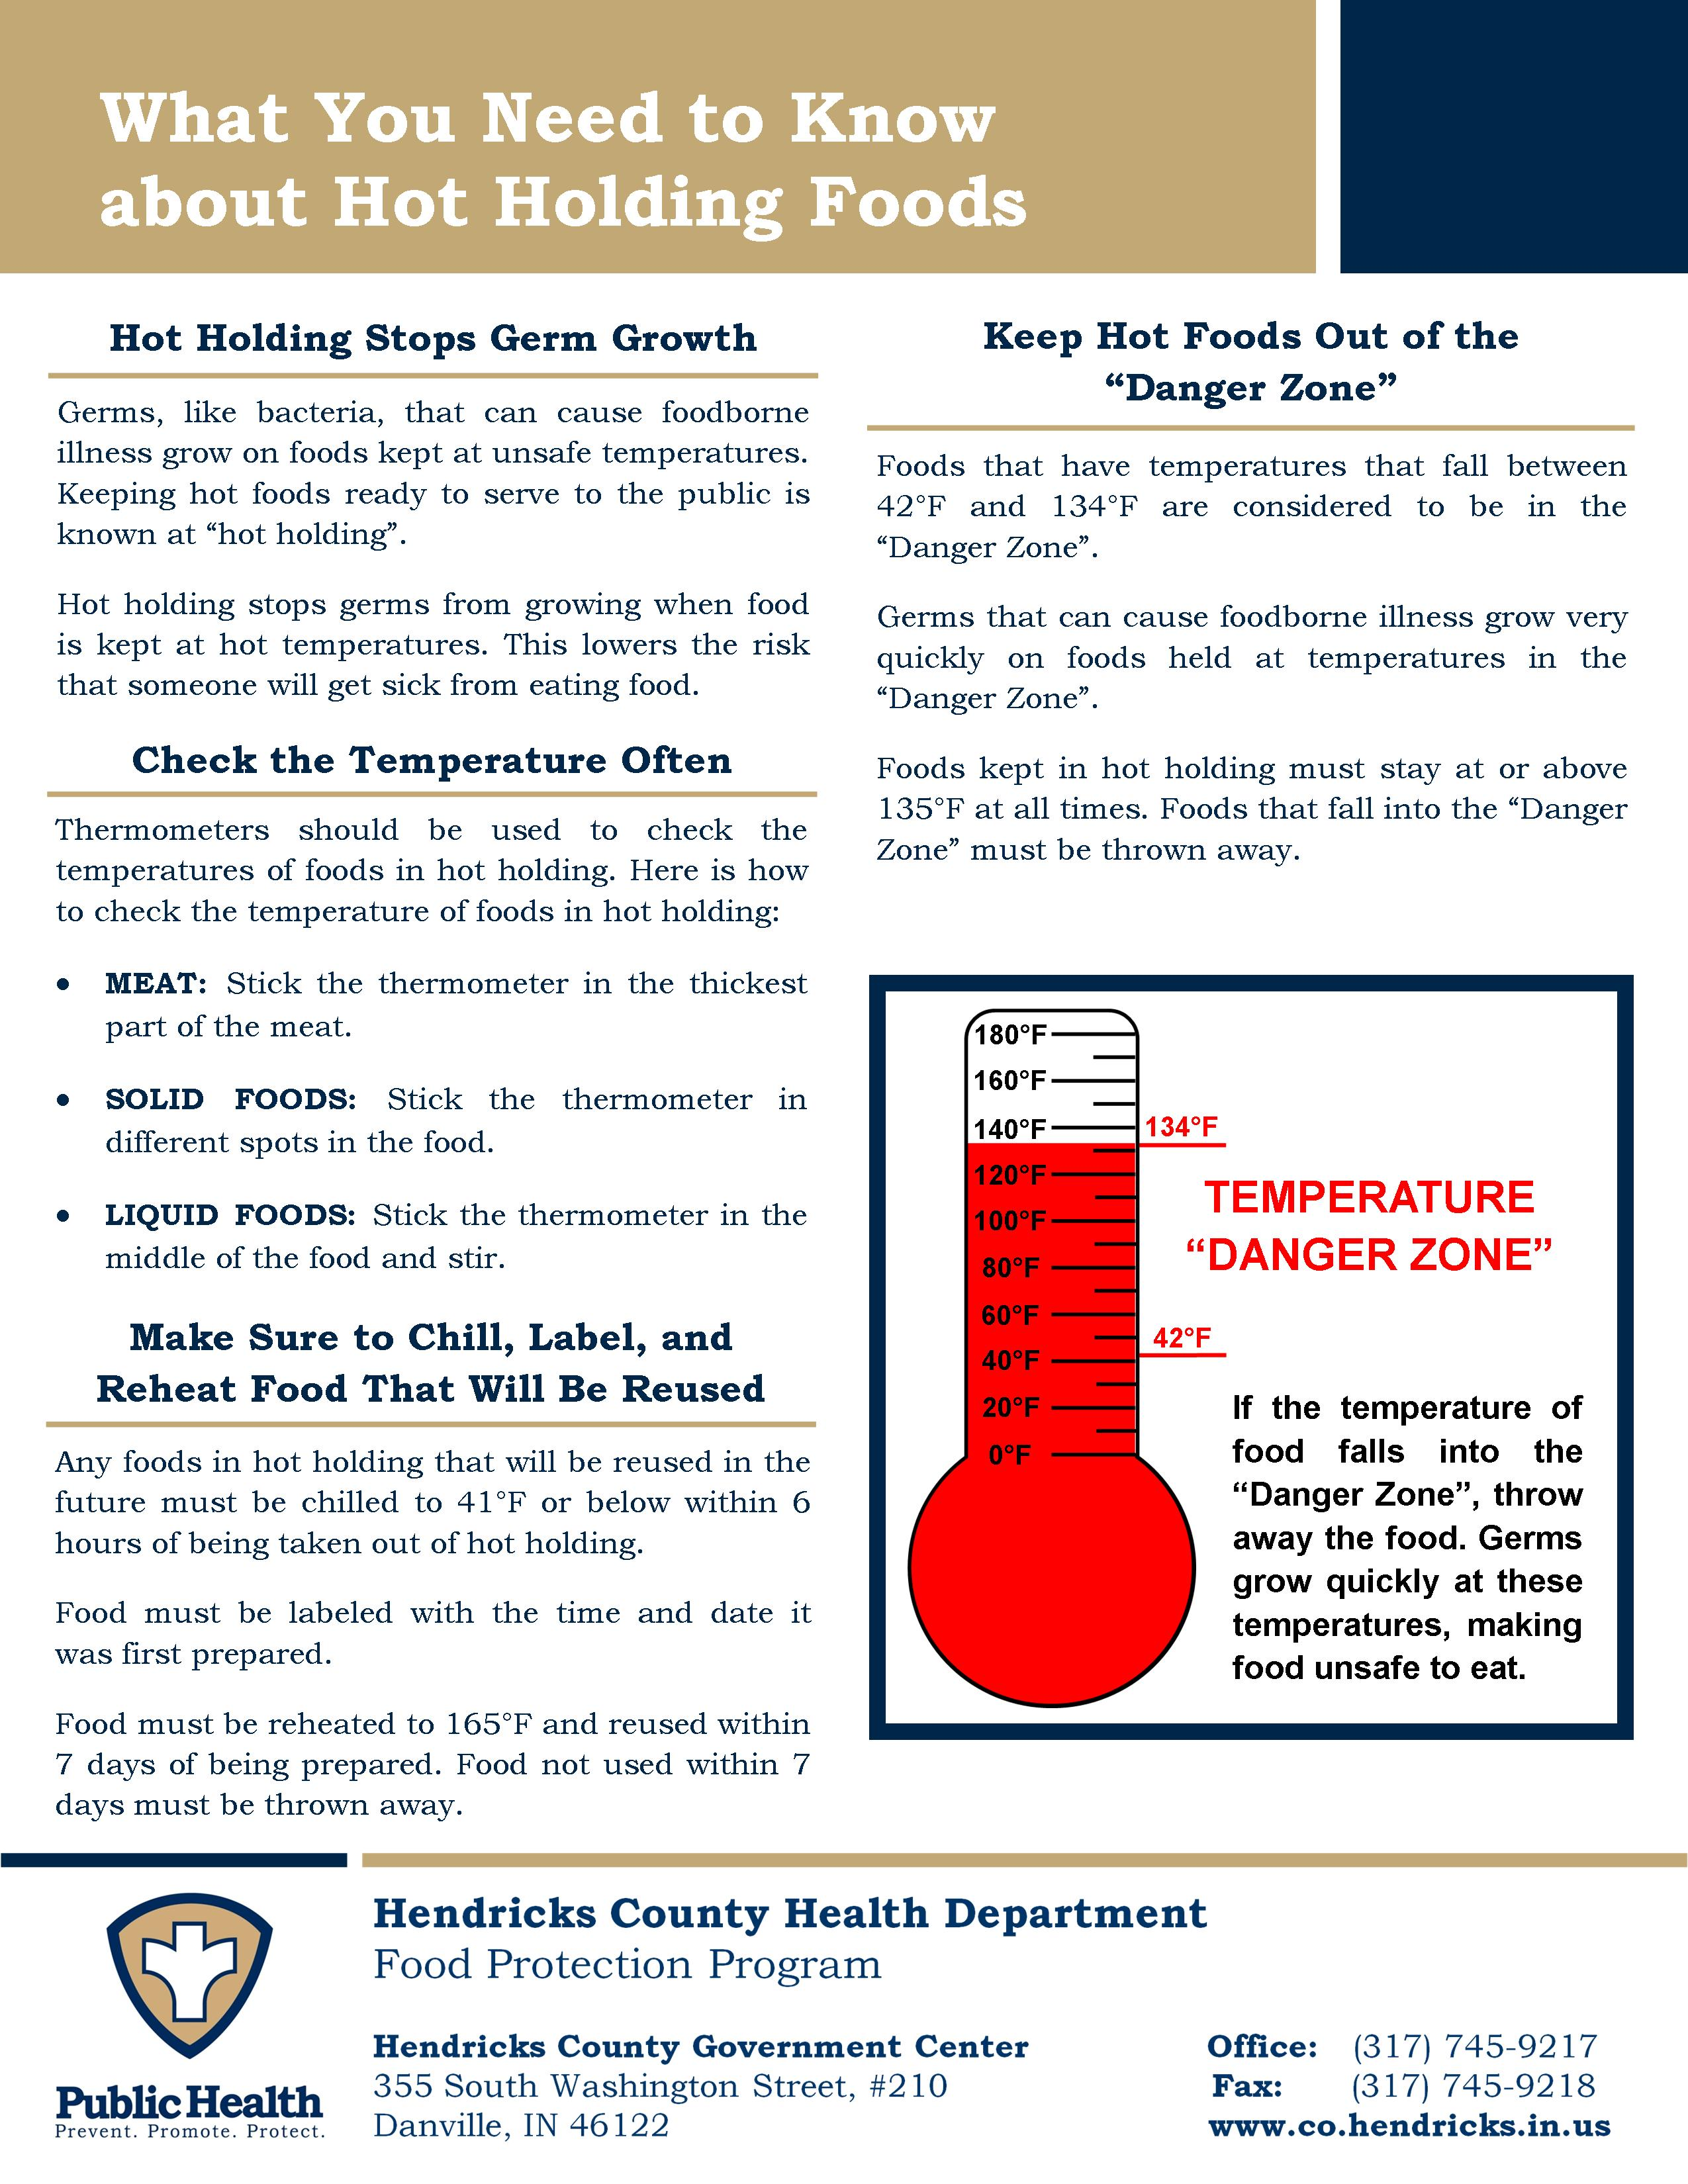 Hot Holding Information Sheet